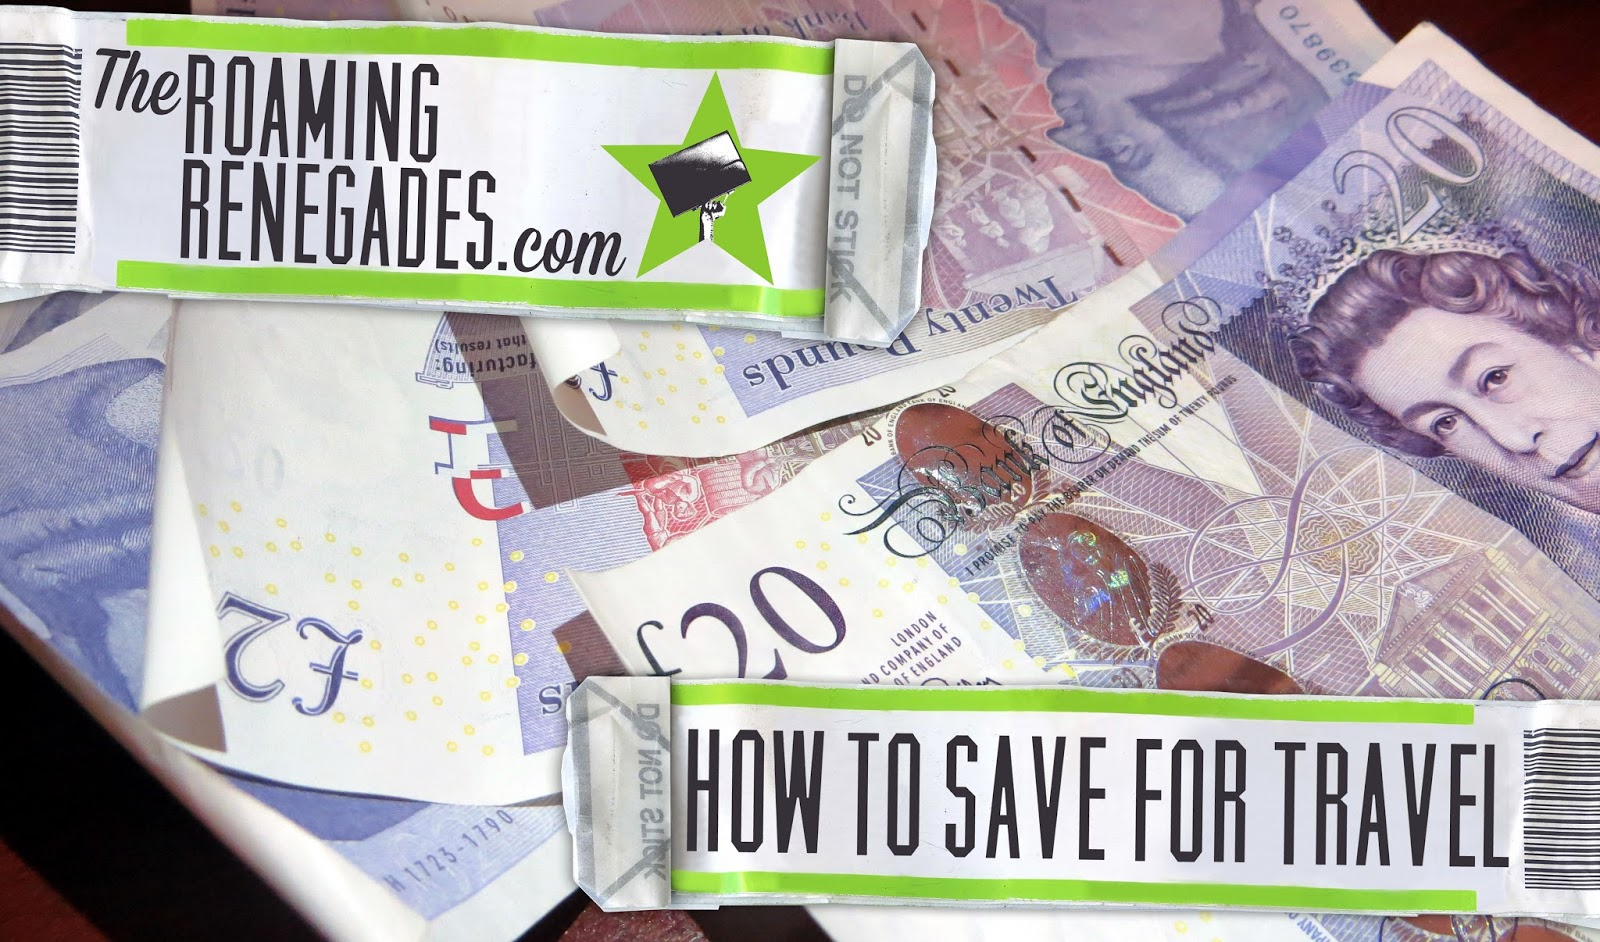 how to save for travelling, how to save for traveling, backpacking, travel, vacation, gap year, sabbatical, quit job and travel, money worries, budgeting, loans, debt,